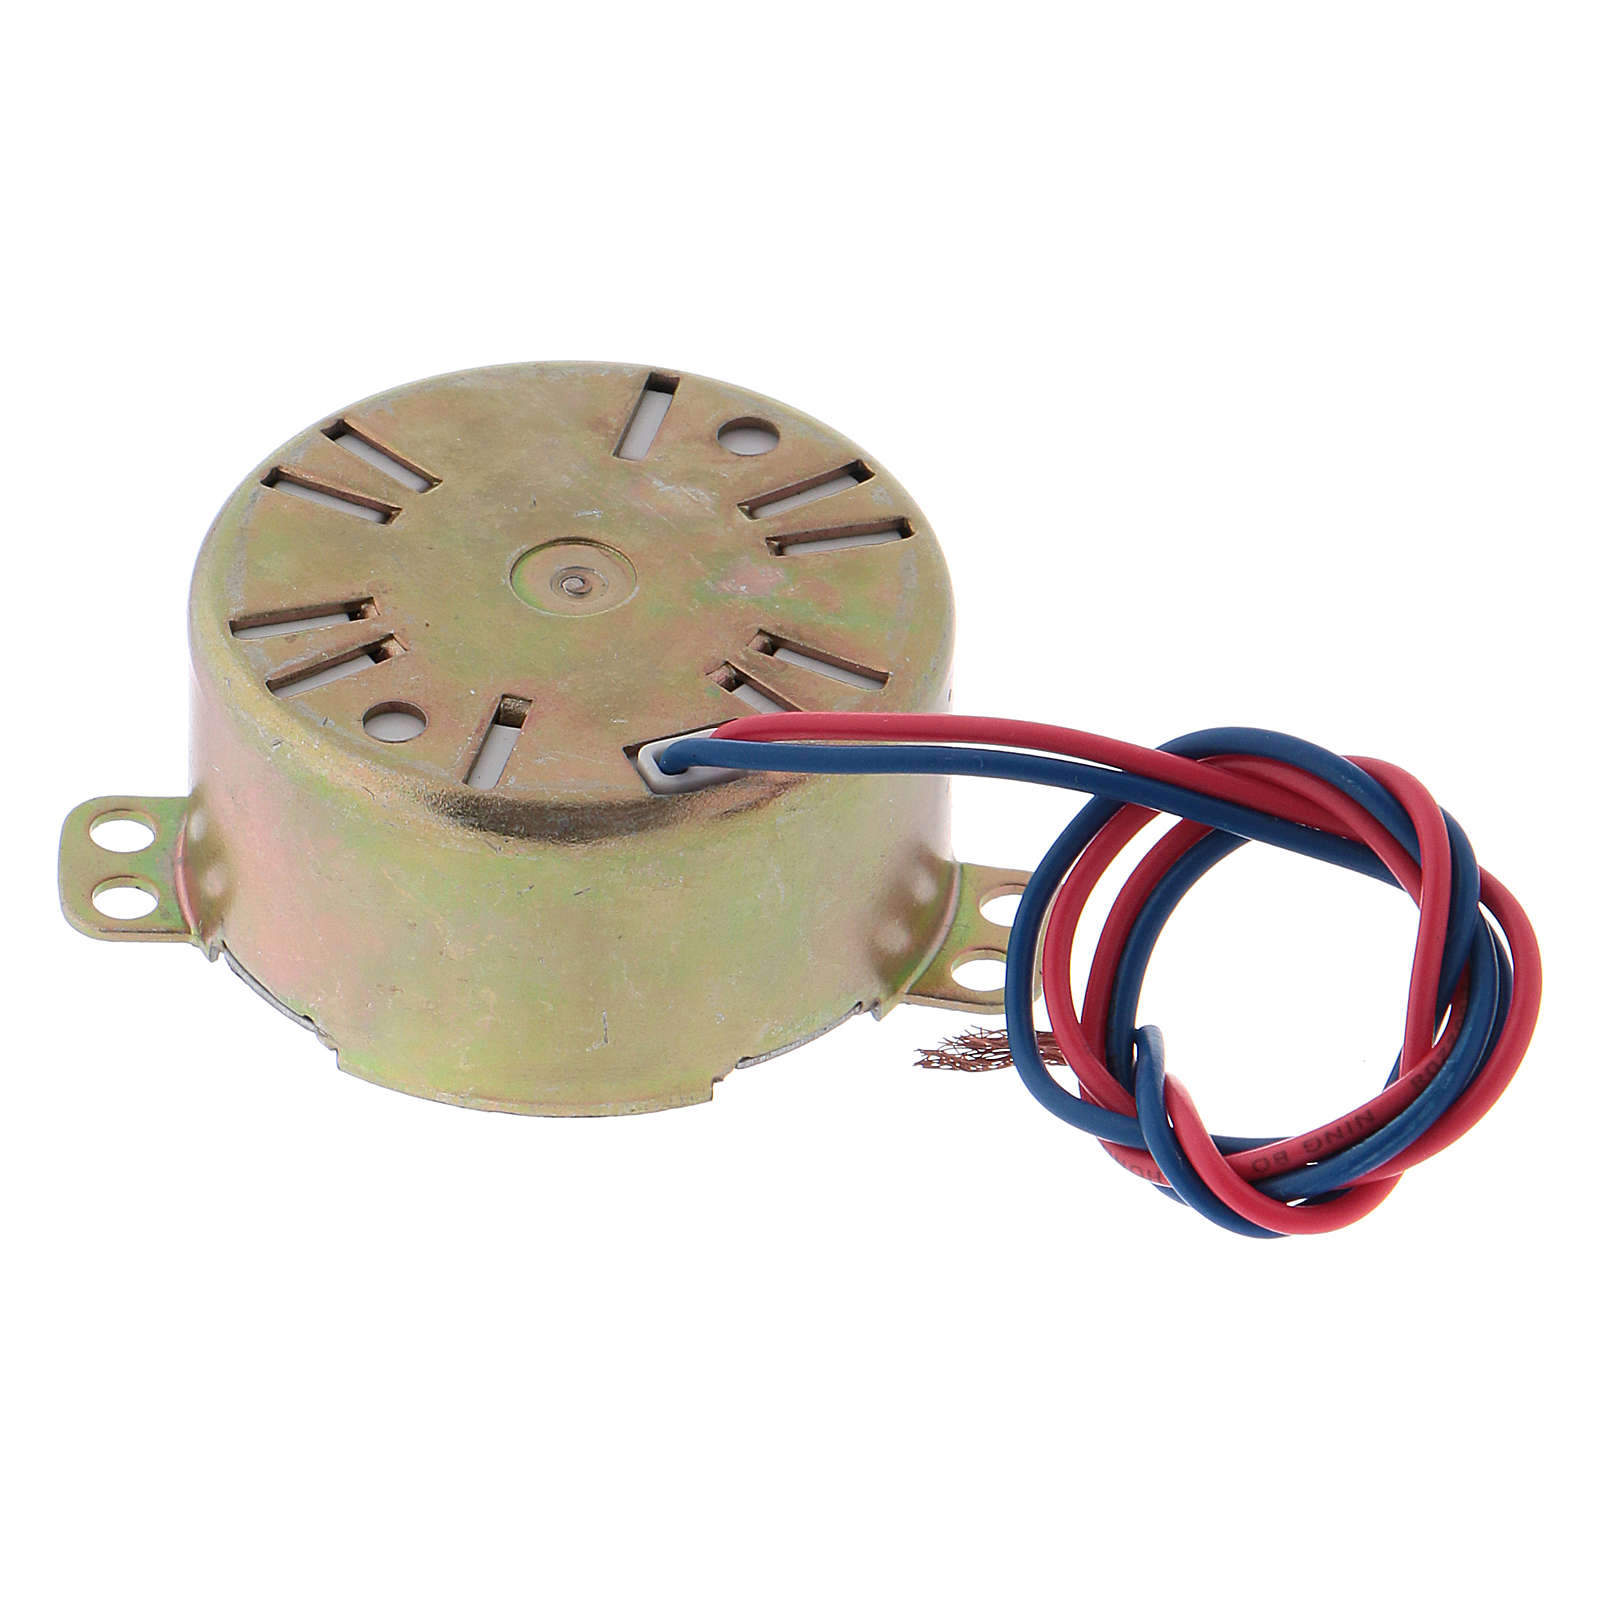 Nativity accessory, ME gear motor, 30 t/m 4